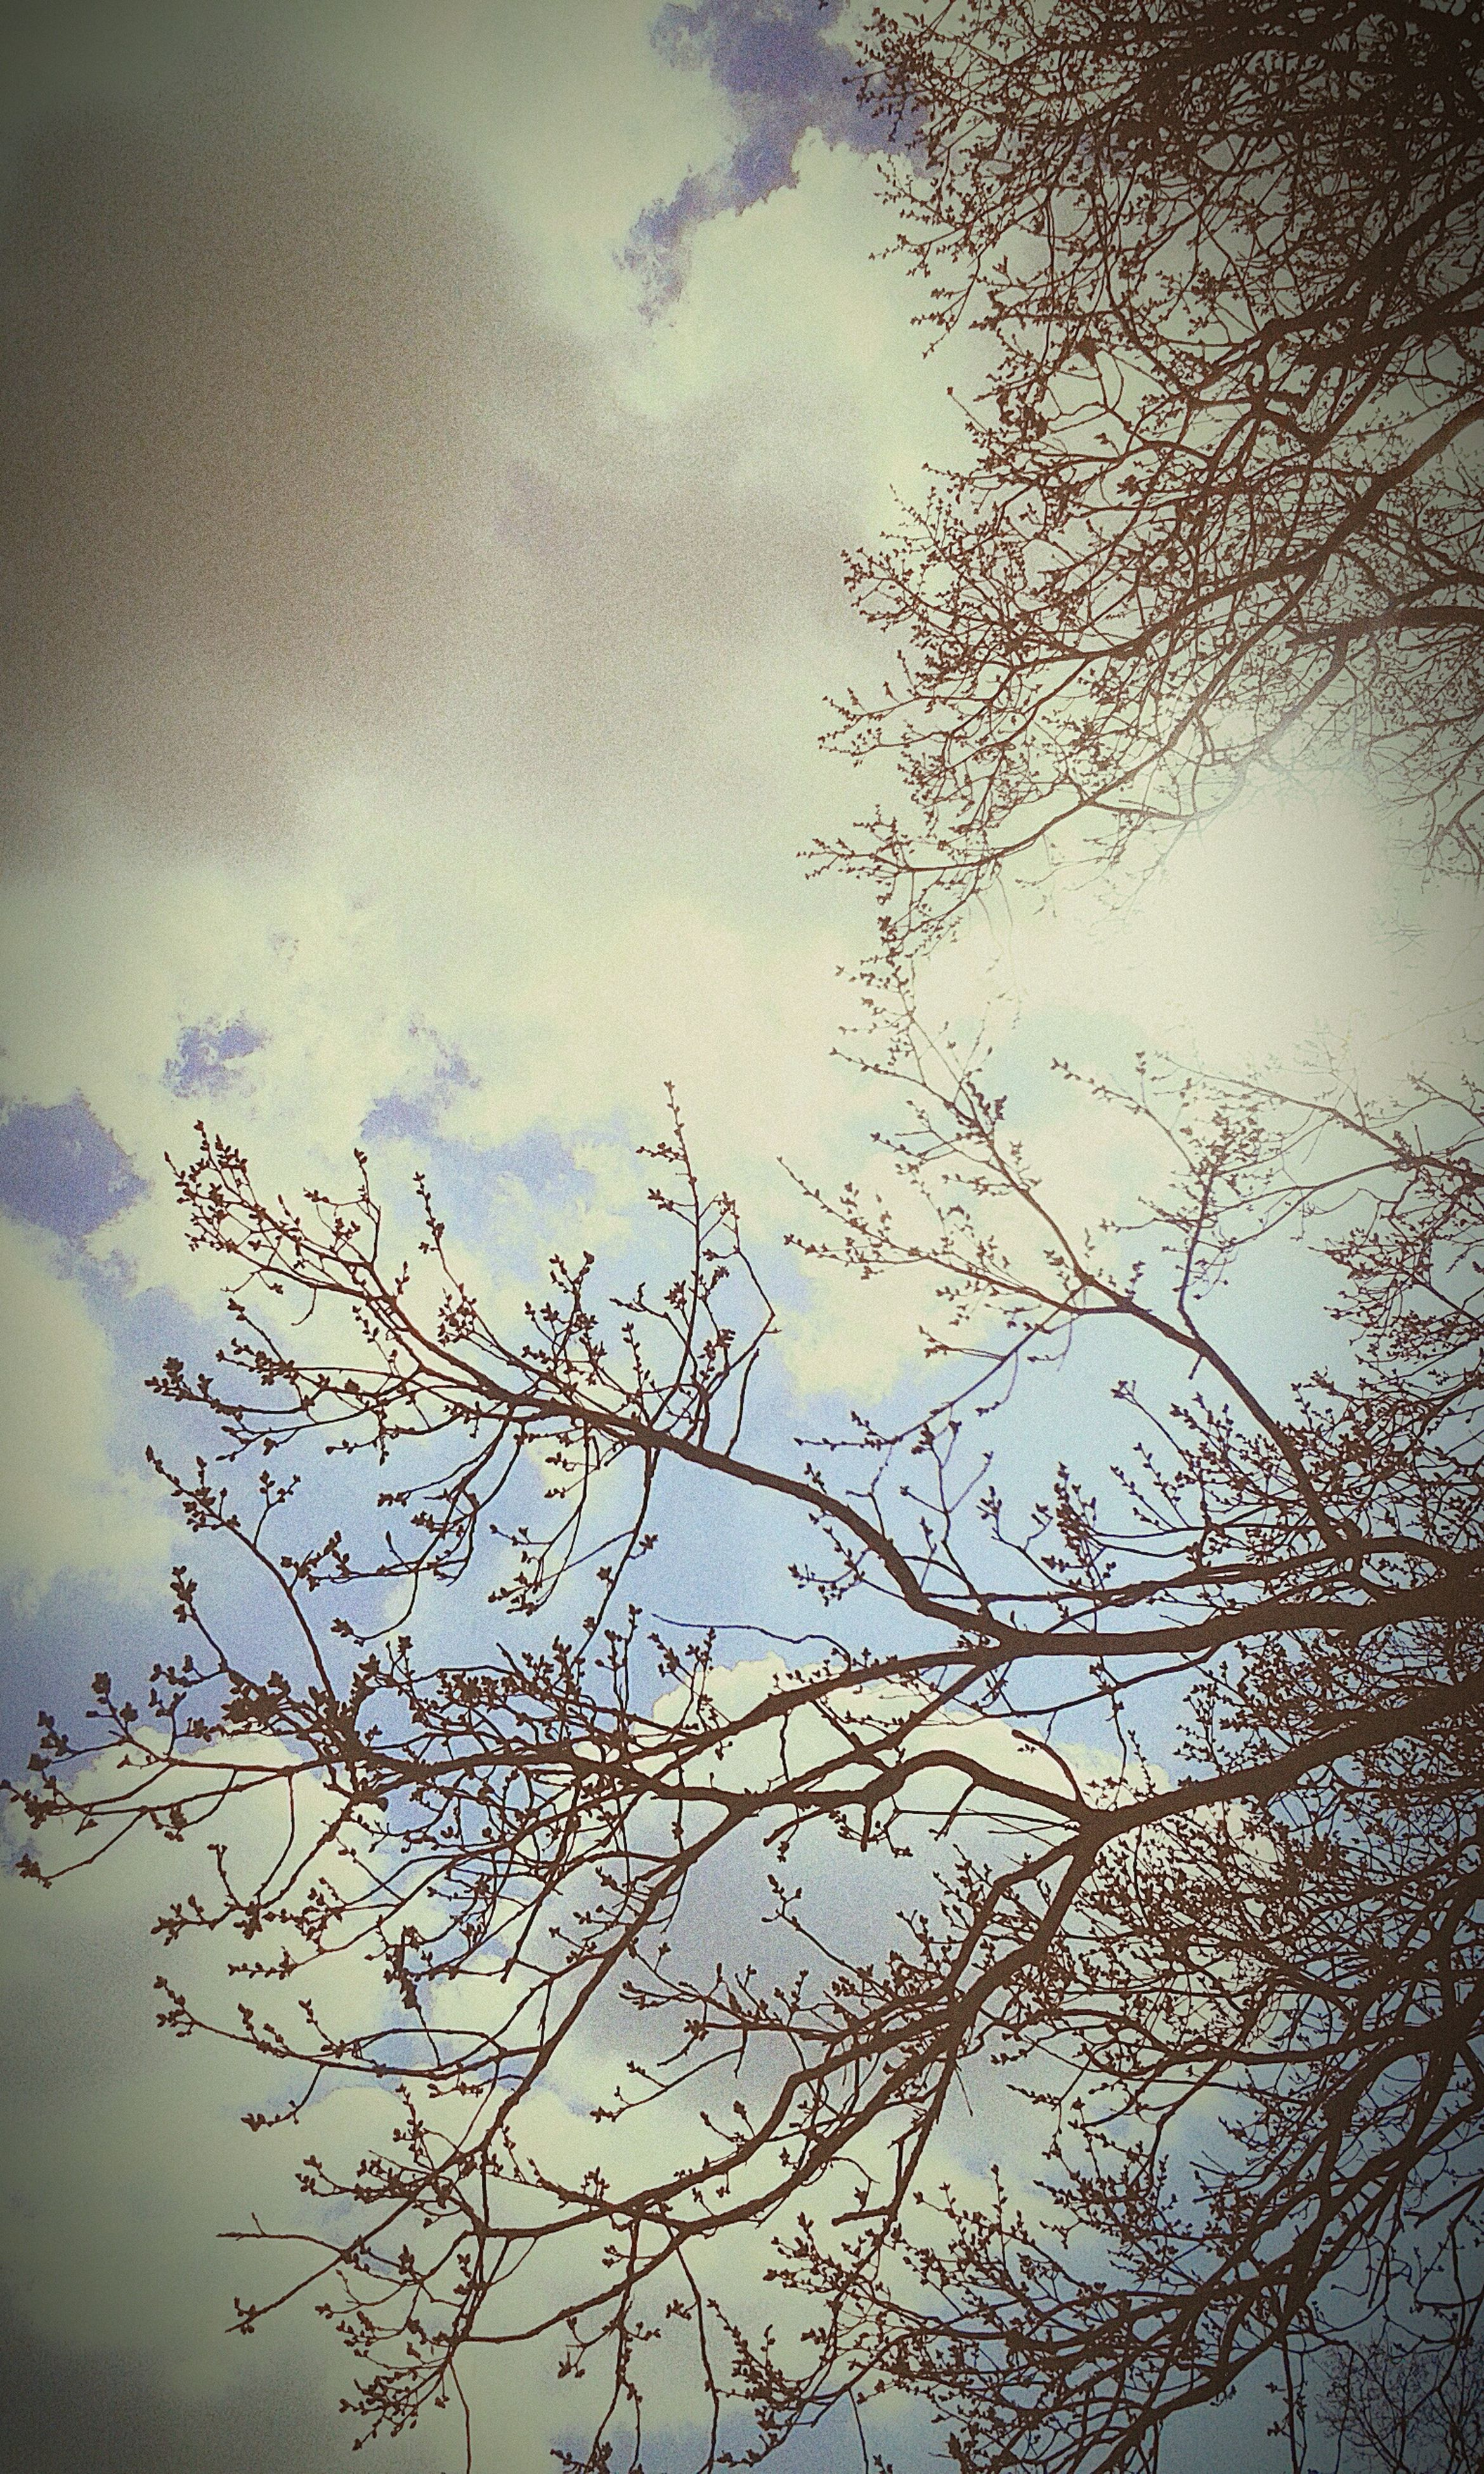 branch, low angle view, sky, tree, bare tree, nature, beauty in nature, tranquility, growth, cloud - sky, bird, no people, outdoors, silhouette, day, scenics, dusk, twig, high section, cloud